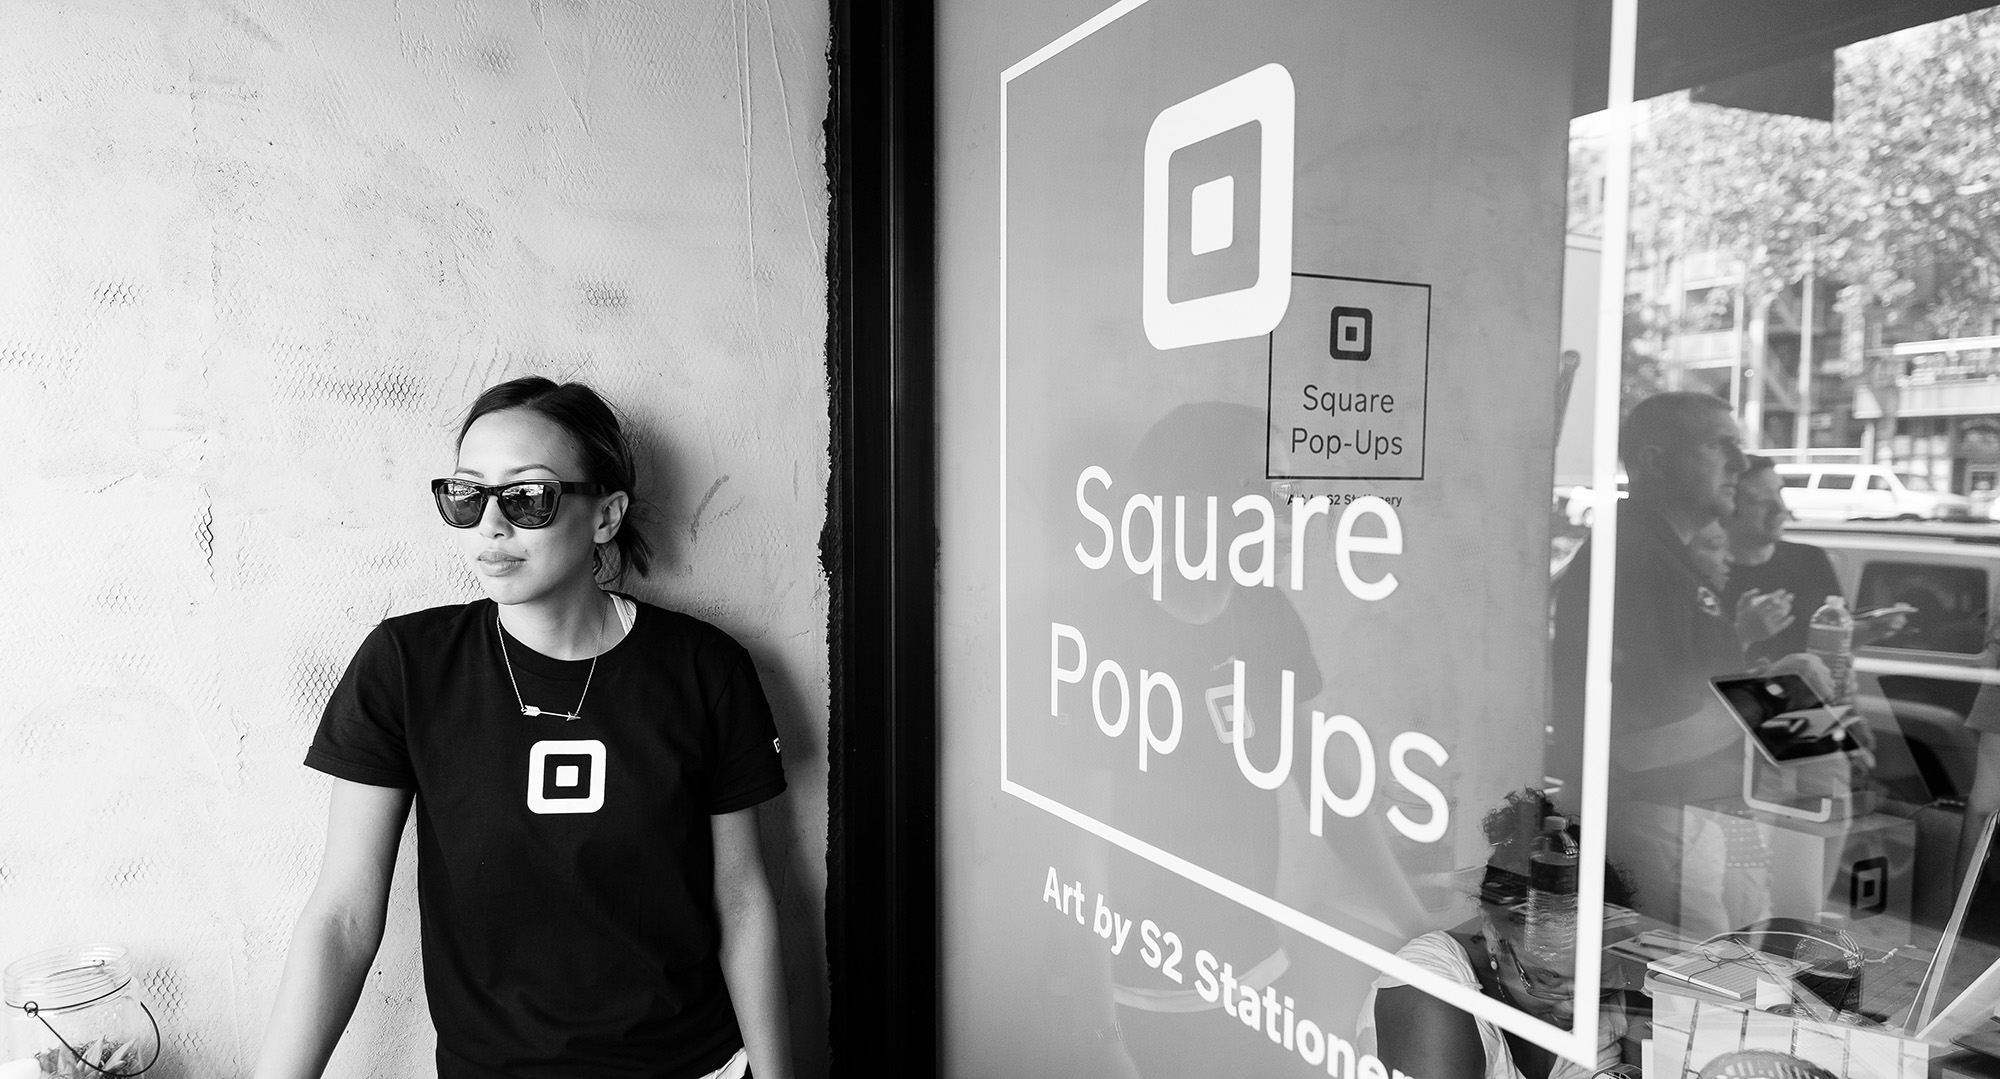 3 cities pop-up tour with Square Inc